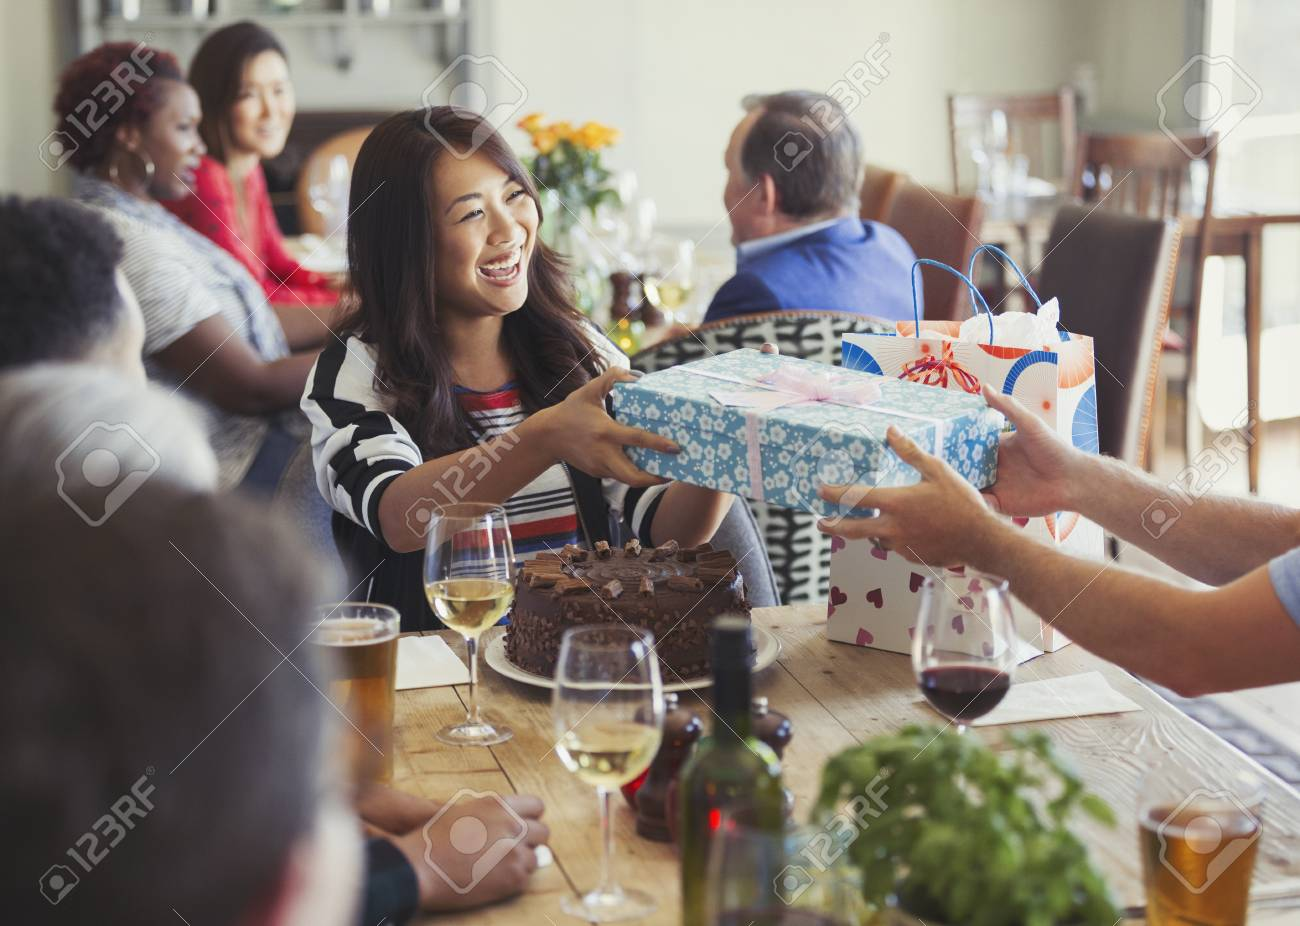 Smiling Woman Receiving Birthday Gift From Friend At Restaurant Table Stock Photo